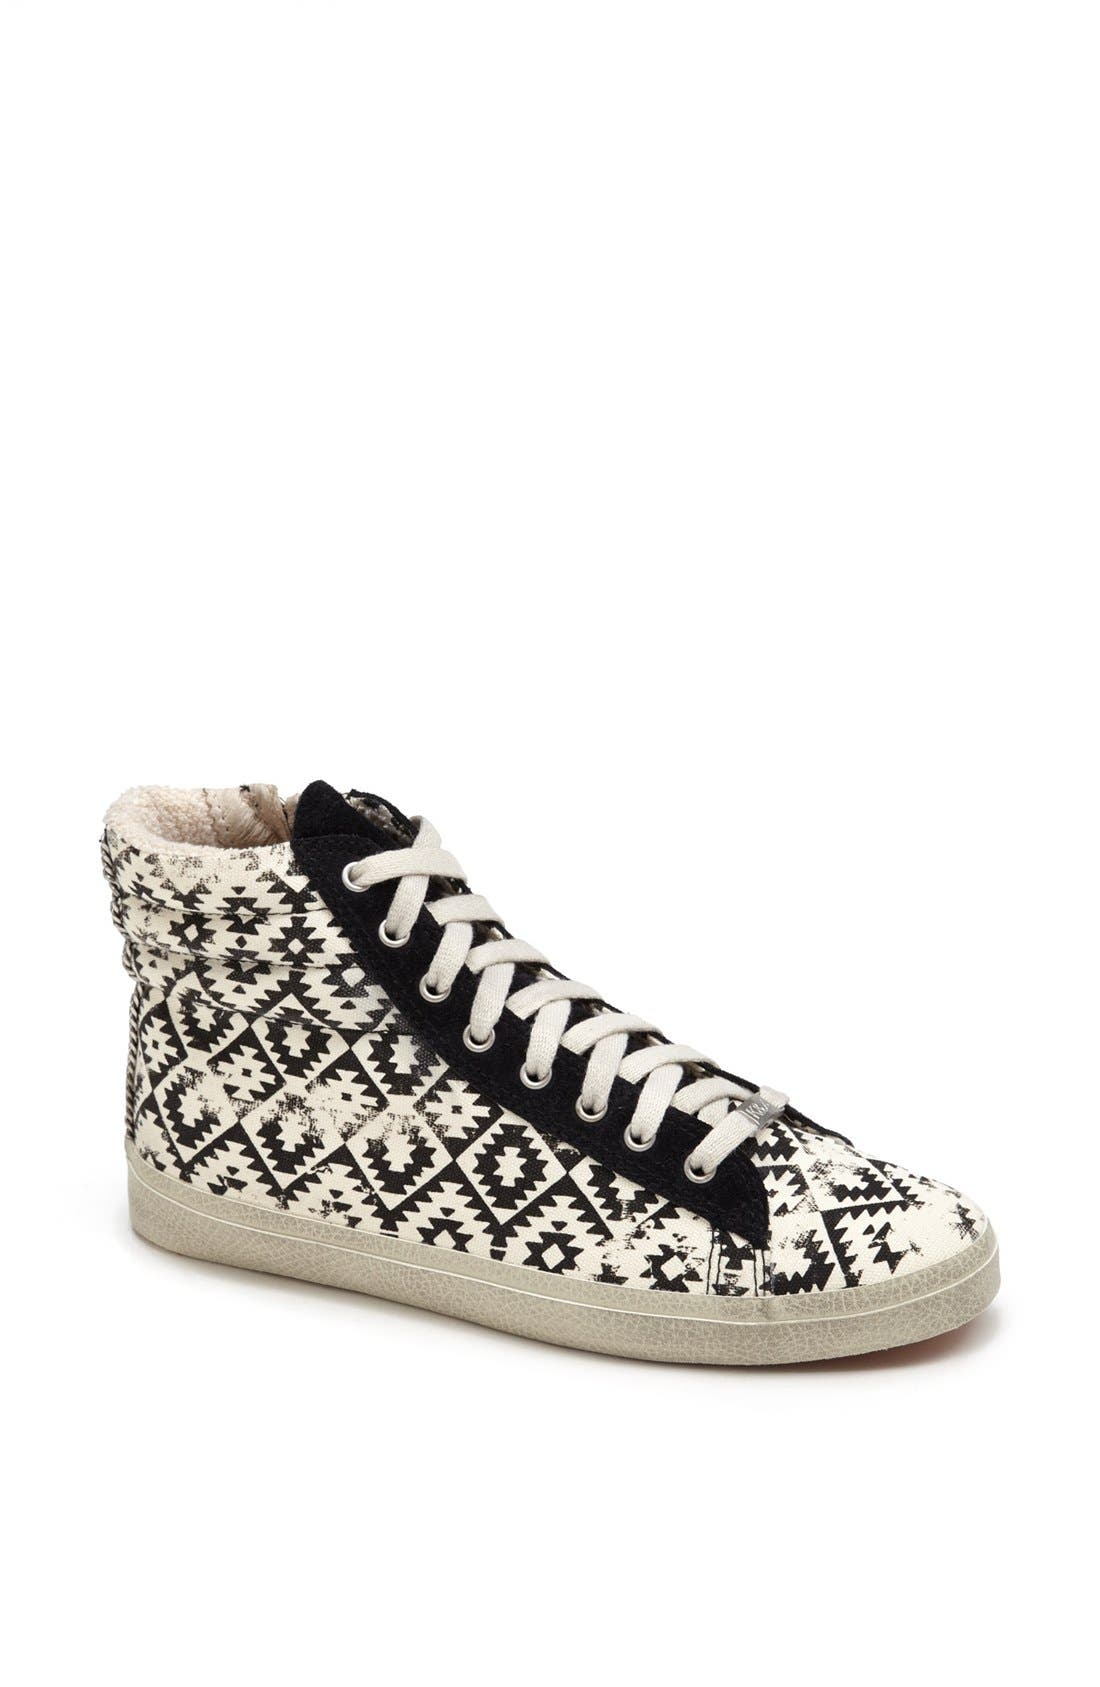 Main Image - Kim & Zozi 'Gypster' High Top Sneaker